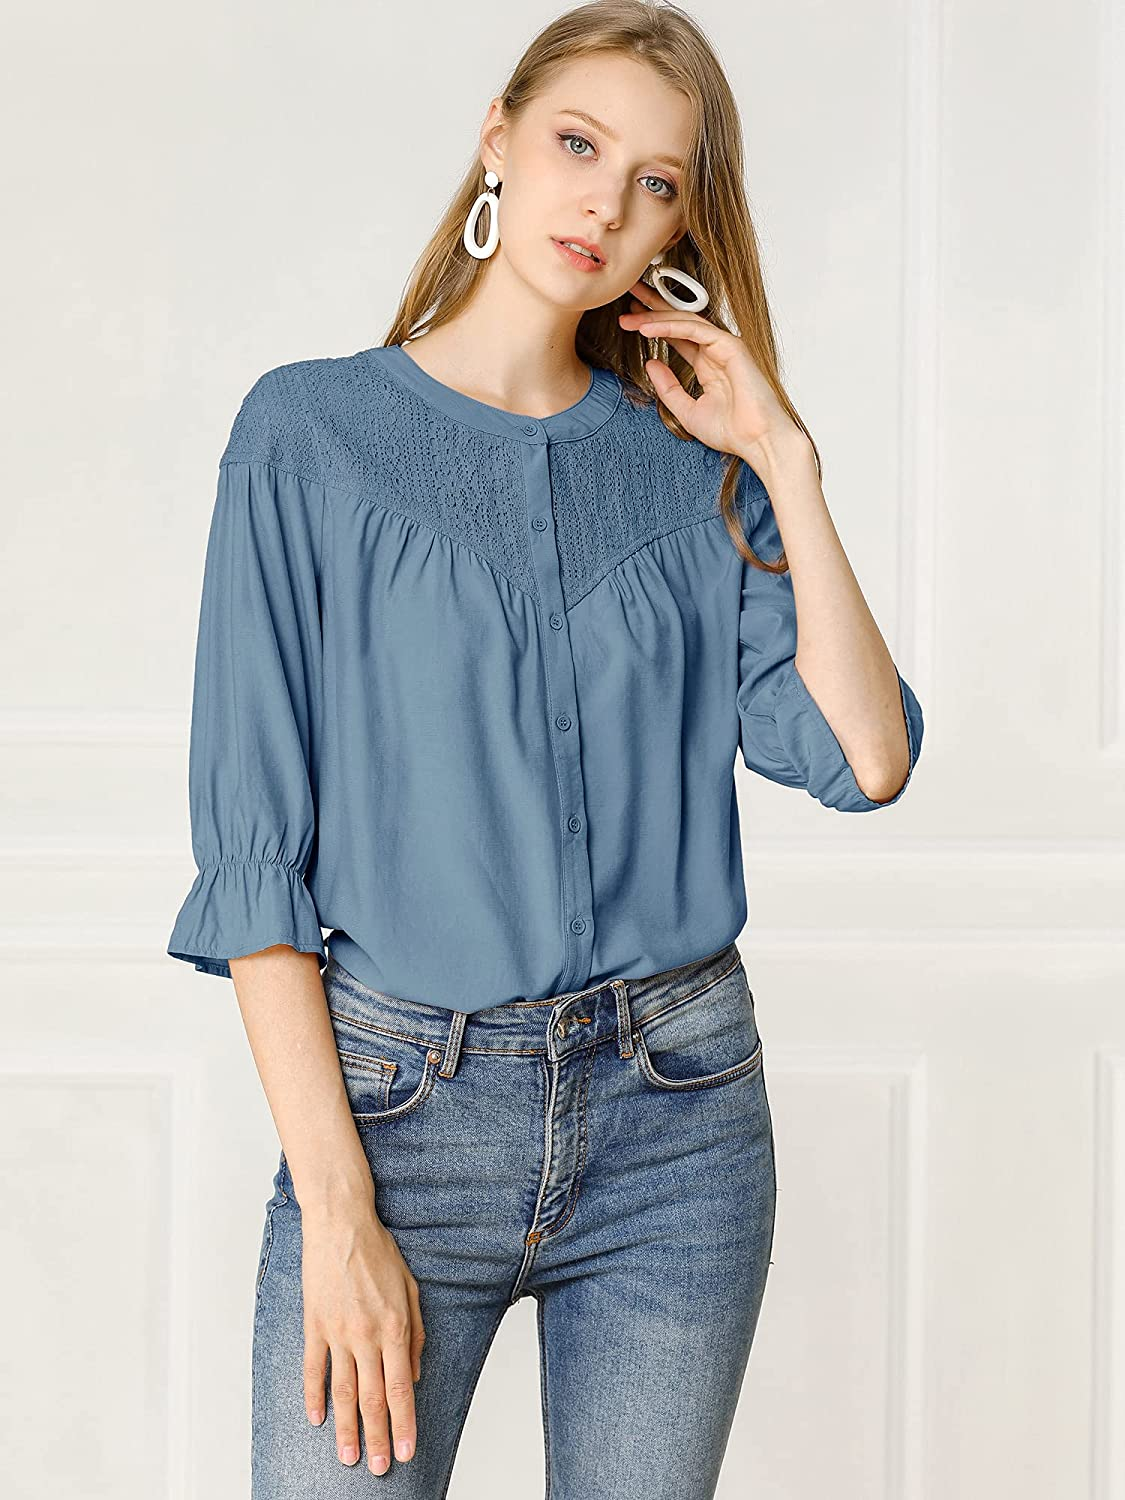 Allegra K Women's Lace Button Down 3/4 Sleeves Solid Color Blouse Shirt